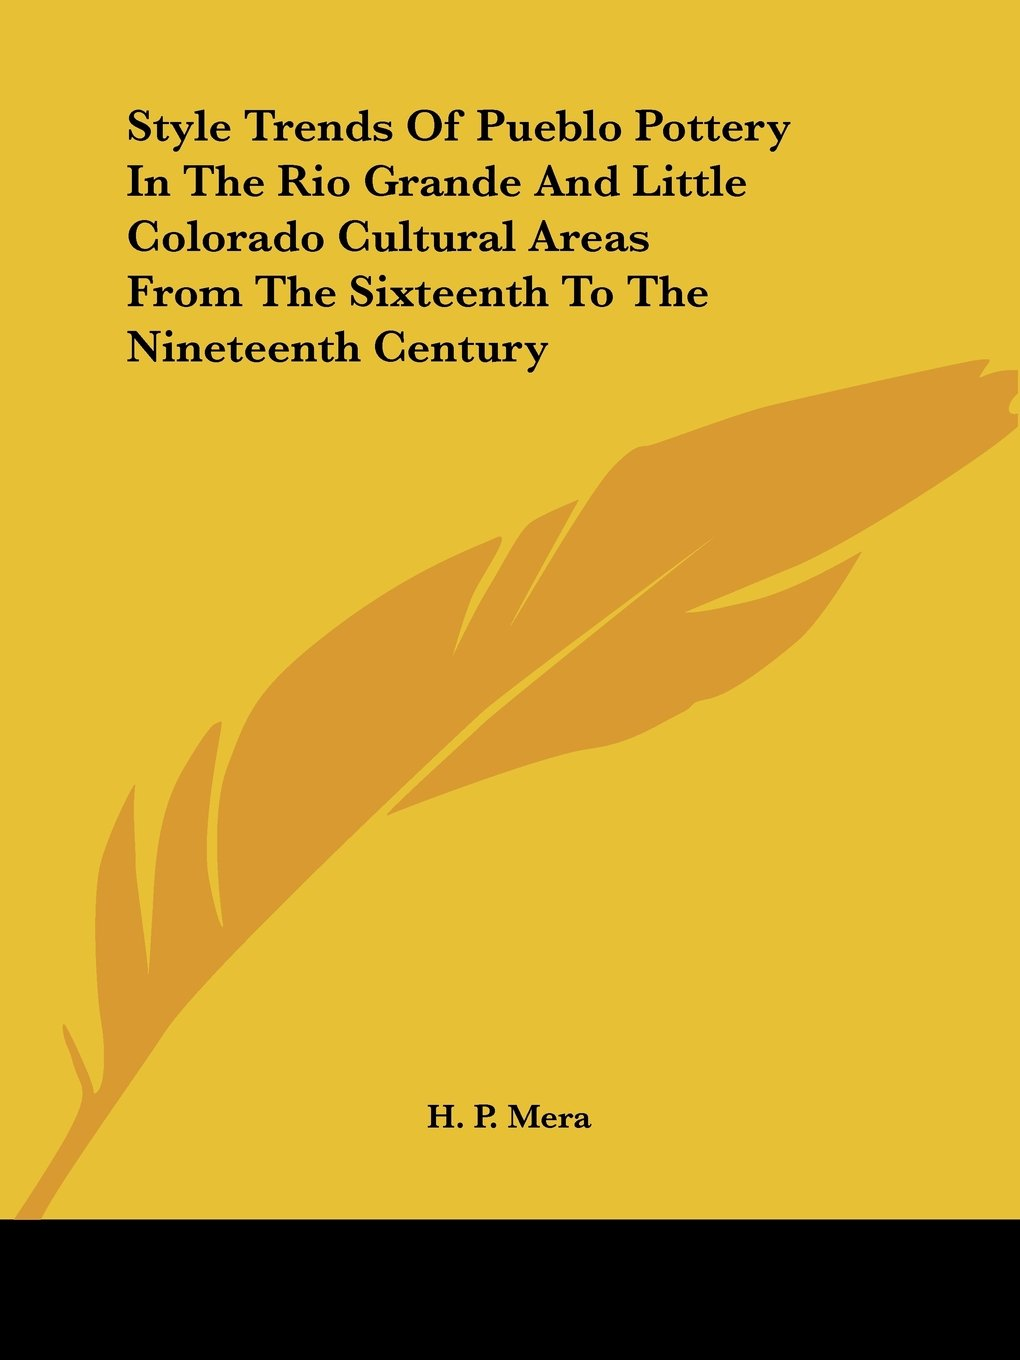 Read Online Style Trends Of Pueblo Pottery In The Rio Grande And Little Colorado Cultural Areas From The Sixteenth To The Nineteenth Century pdf